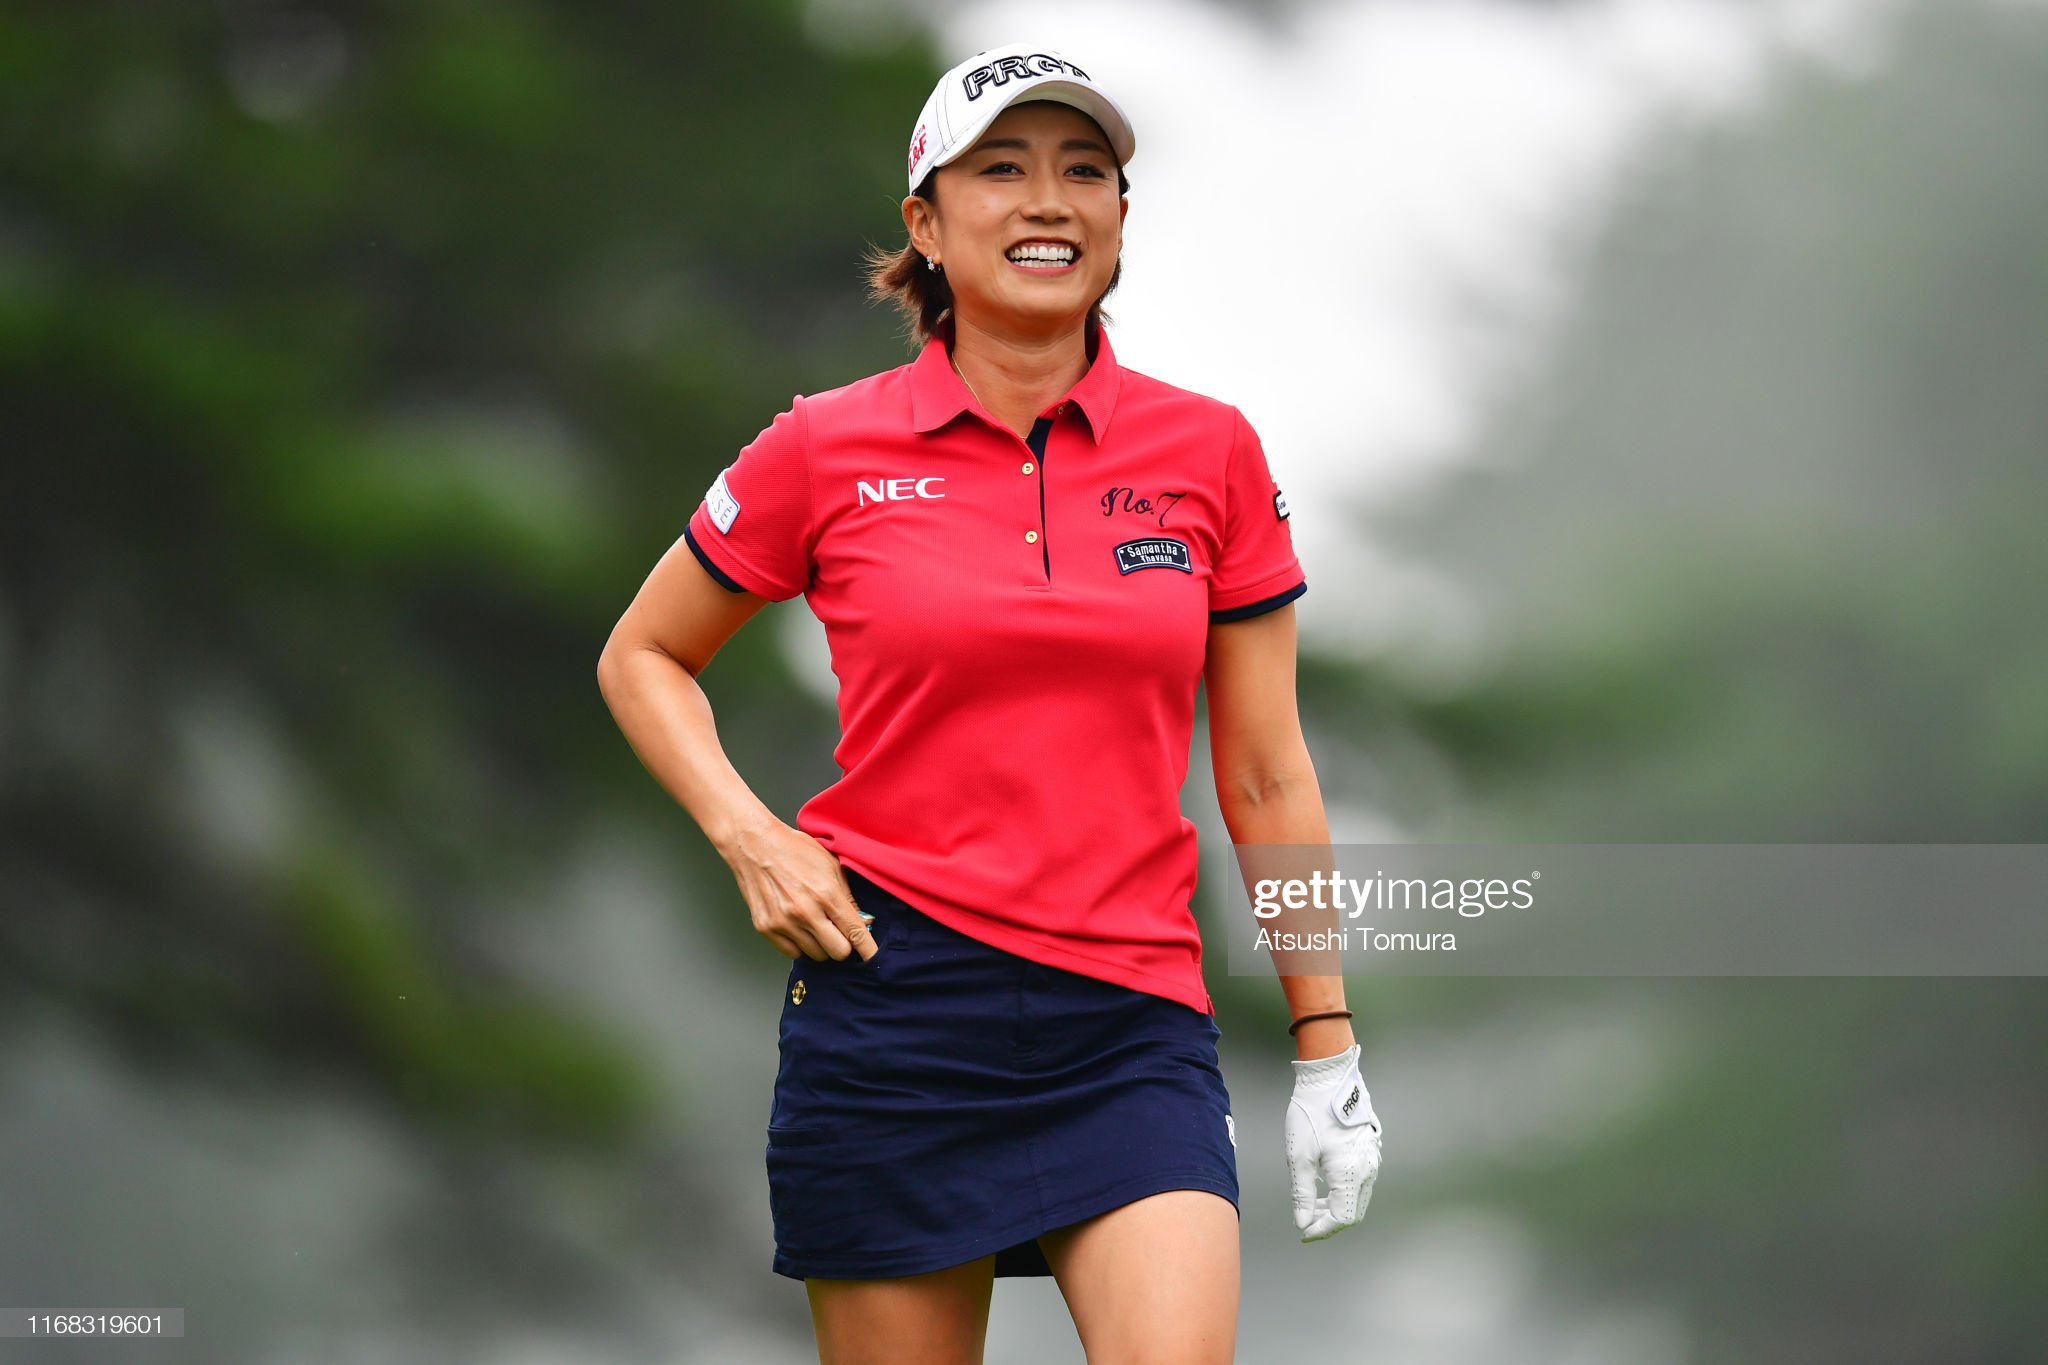 https://media.gettyimages.com/photos/erina-hara-of-japan-smiles-after-her-tee-shot-on-the-4th-hole-during-picture-id1168319601?s=2048x2048